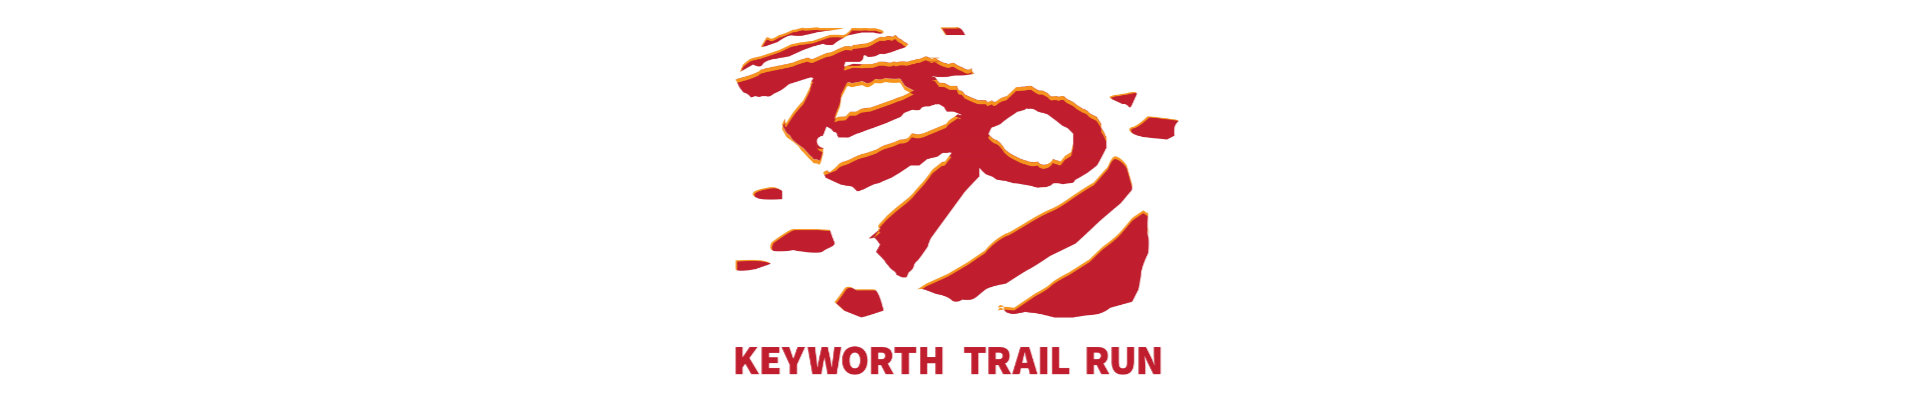 Keyworth Trail Run 2020